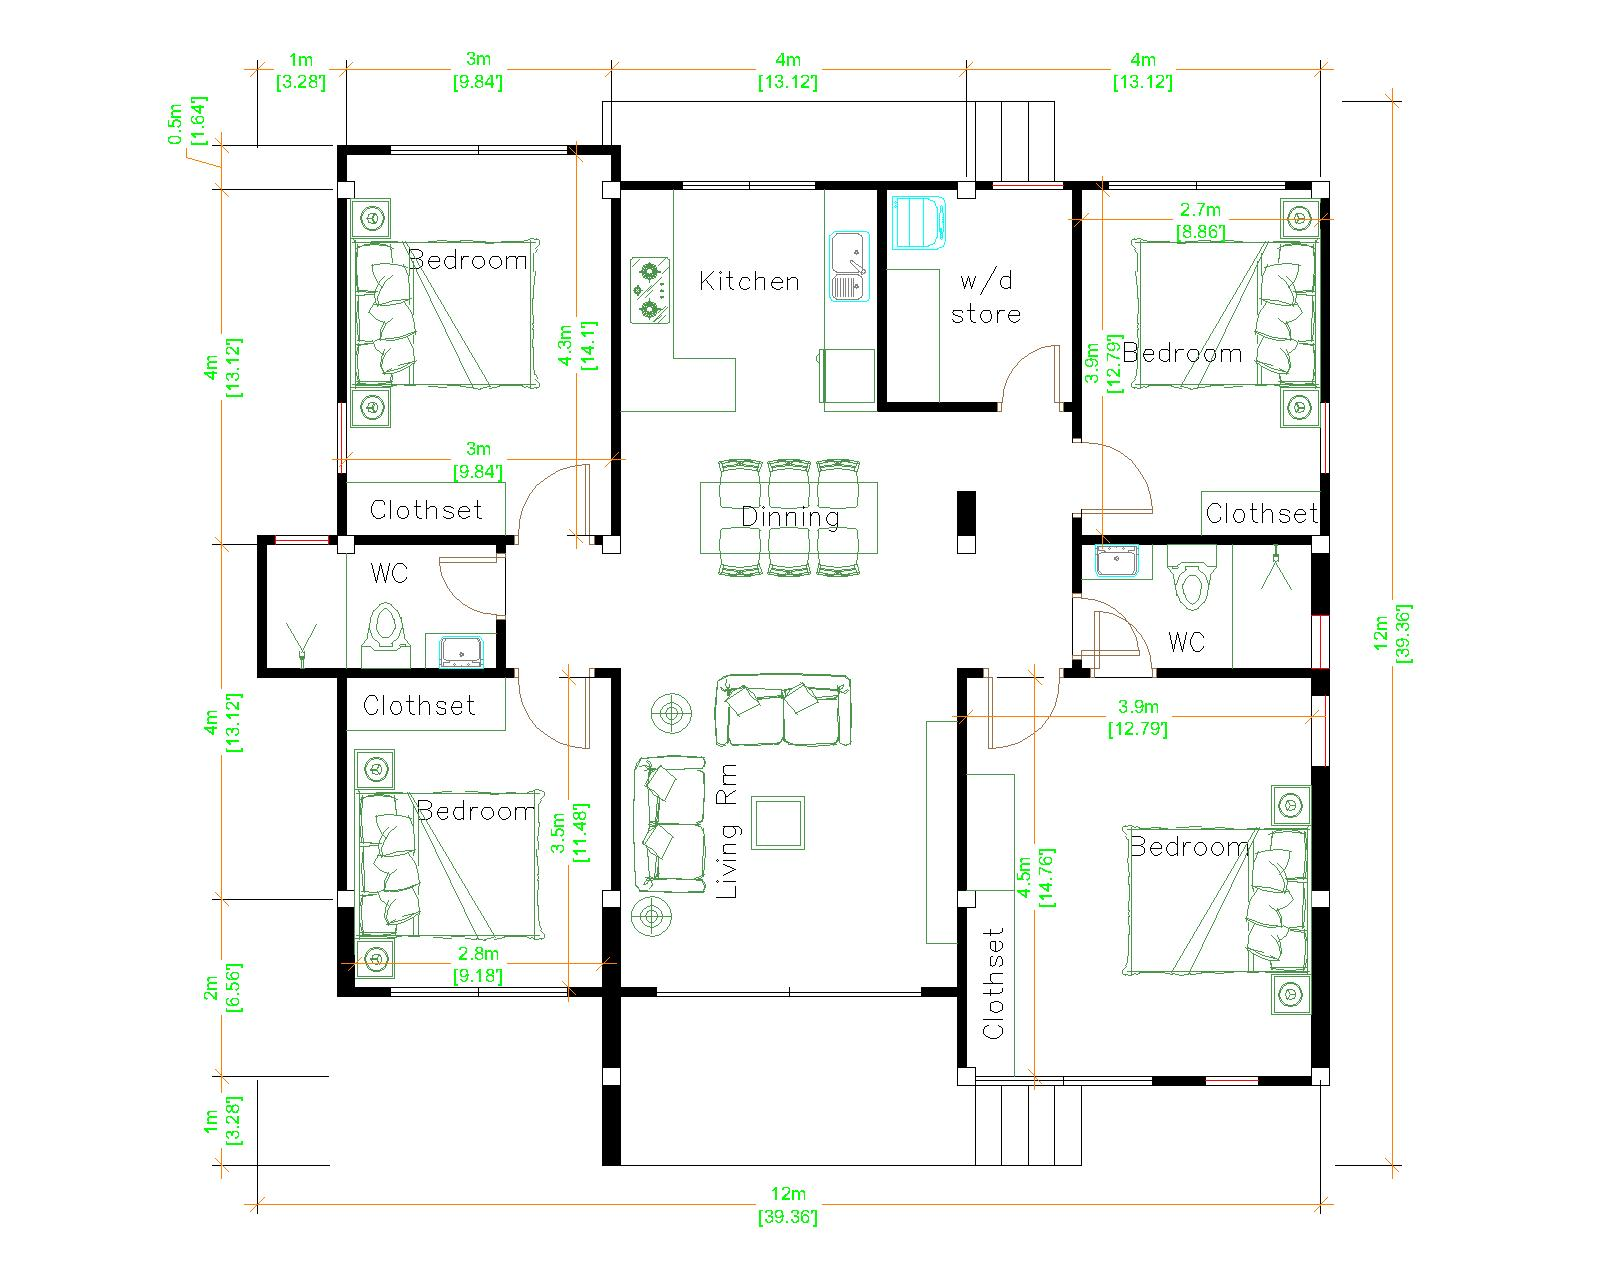 4 Bedroom House Plans 12x12 Meter 39x39 Feet floor plan